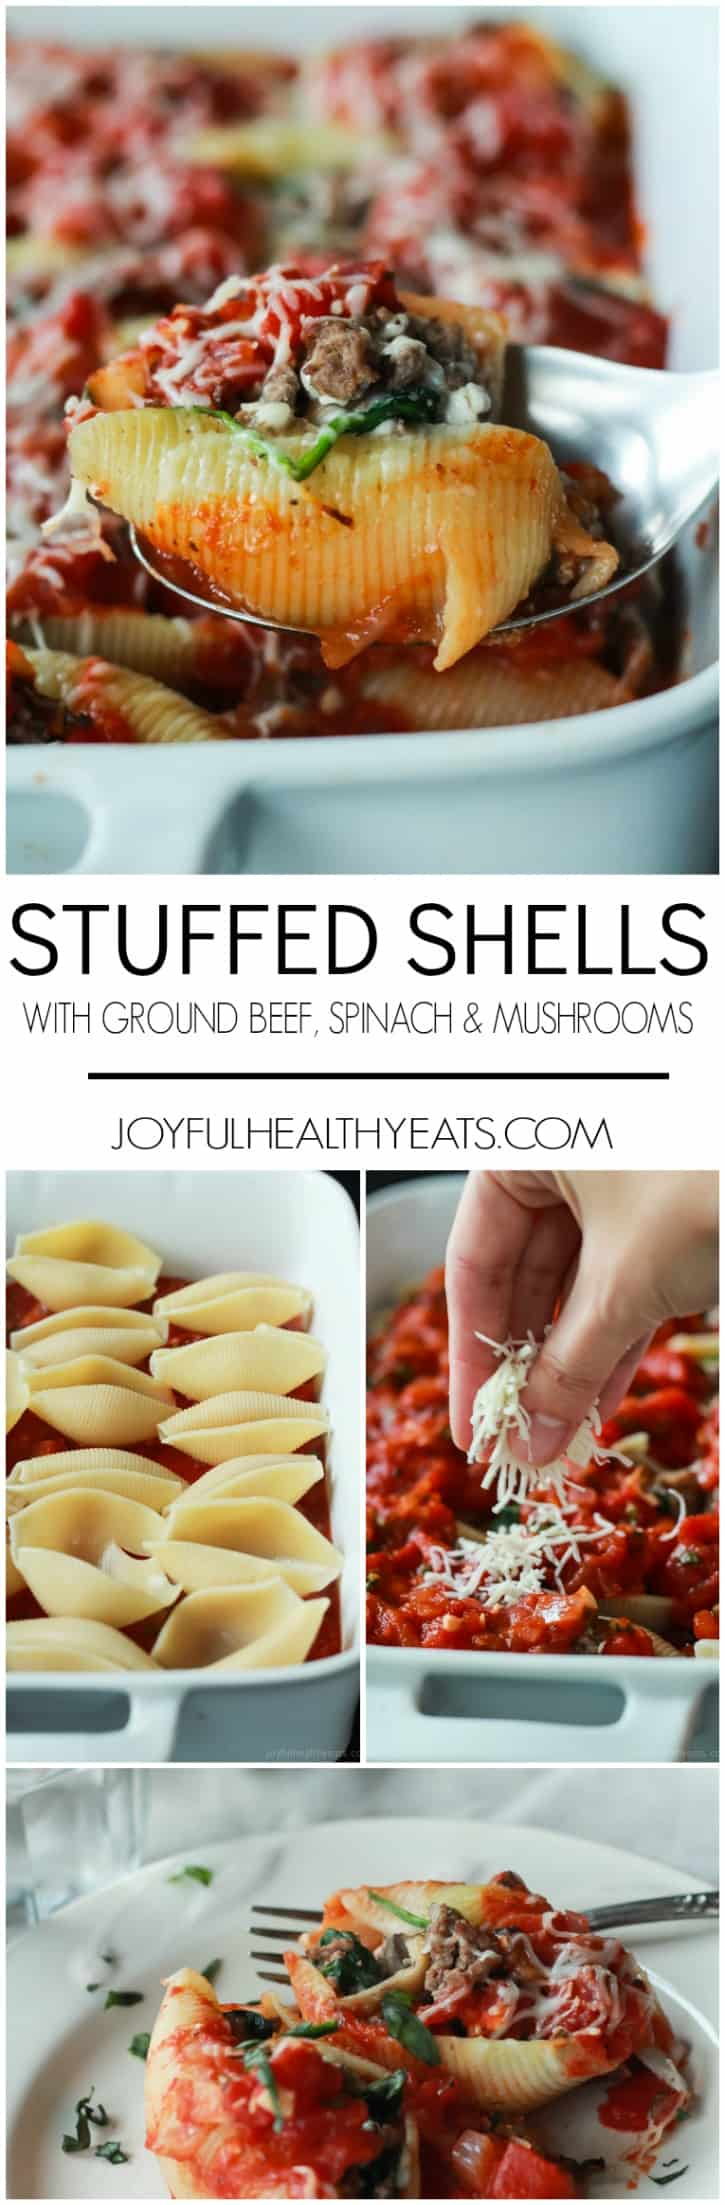 An easy Stuffed Shells recipe with ground beef, spinach, and mushrooms then topped with a homemade marinara sauce - all for only 223 calories per serving!   joyfulhealthyeats.com #recipes